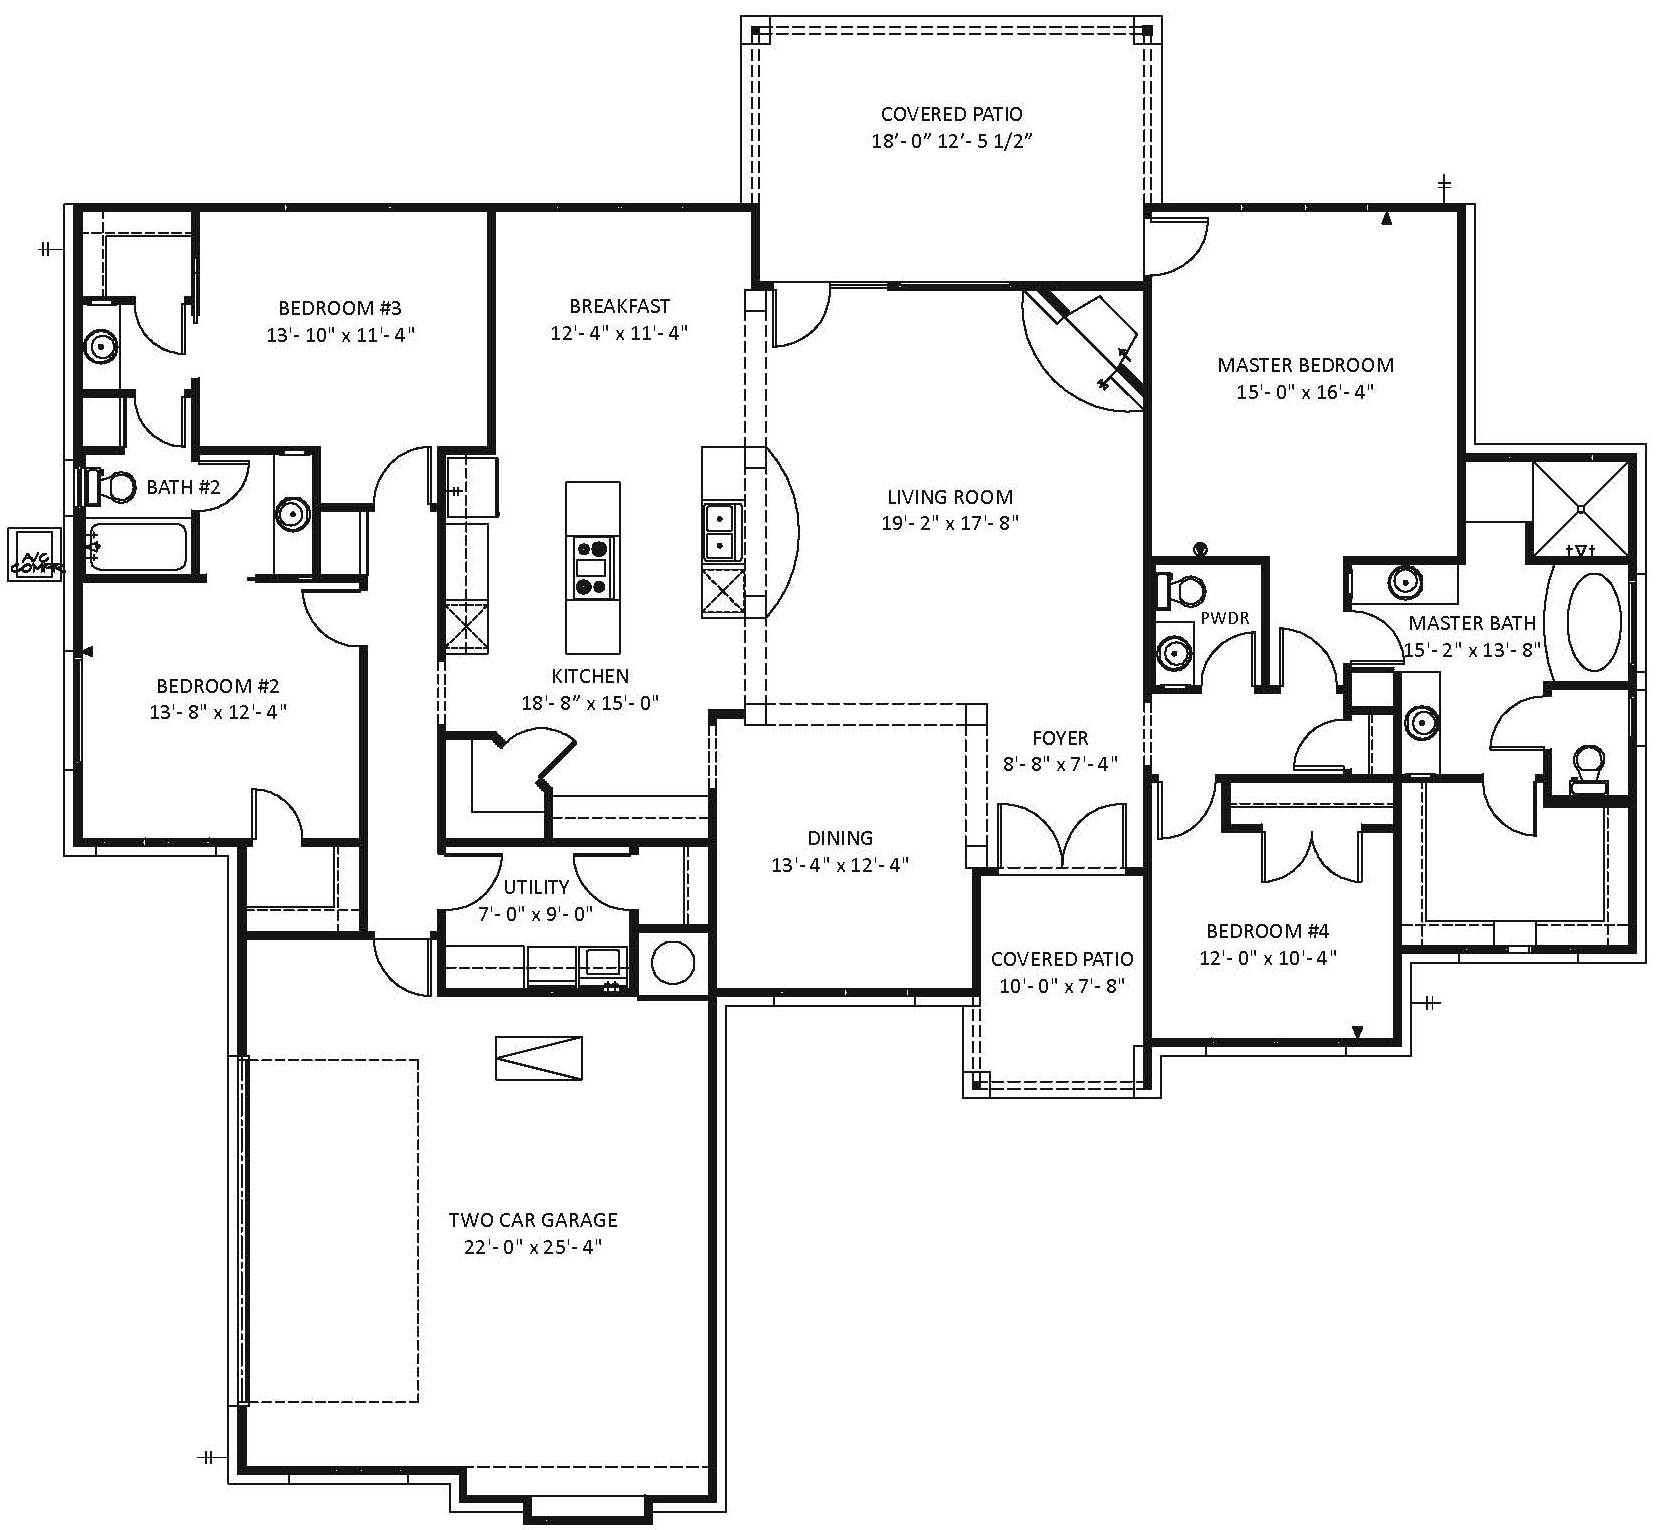 Mike haberstroh general contracting homes for sale Customize floor plans